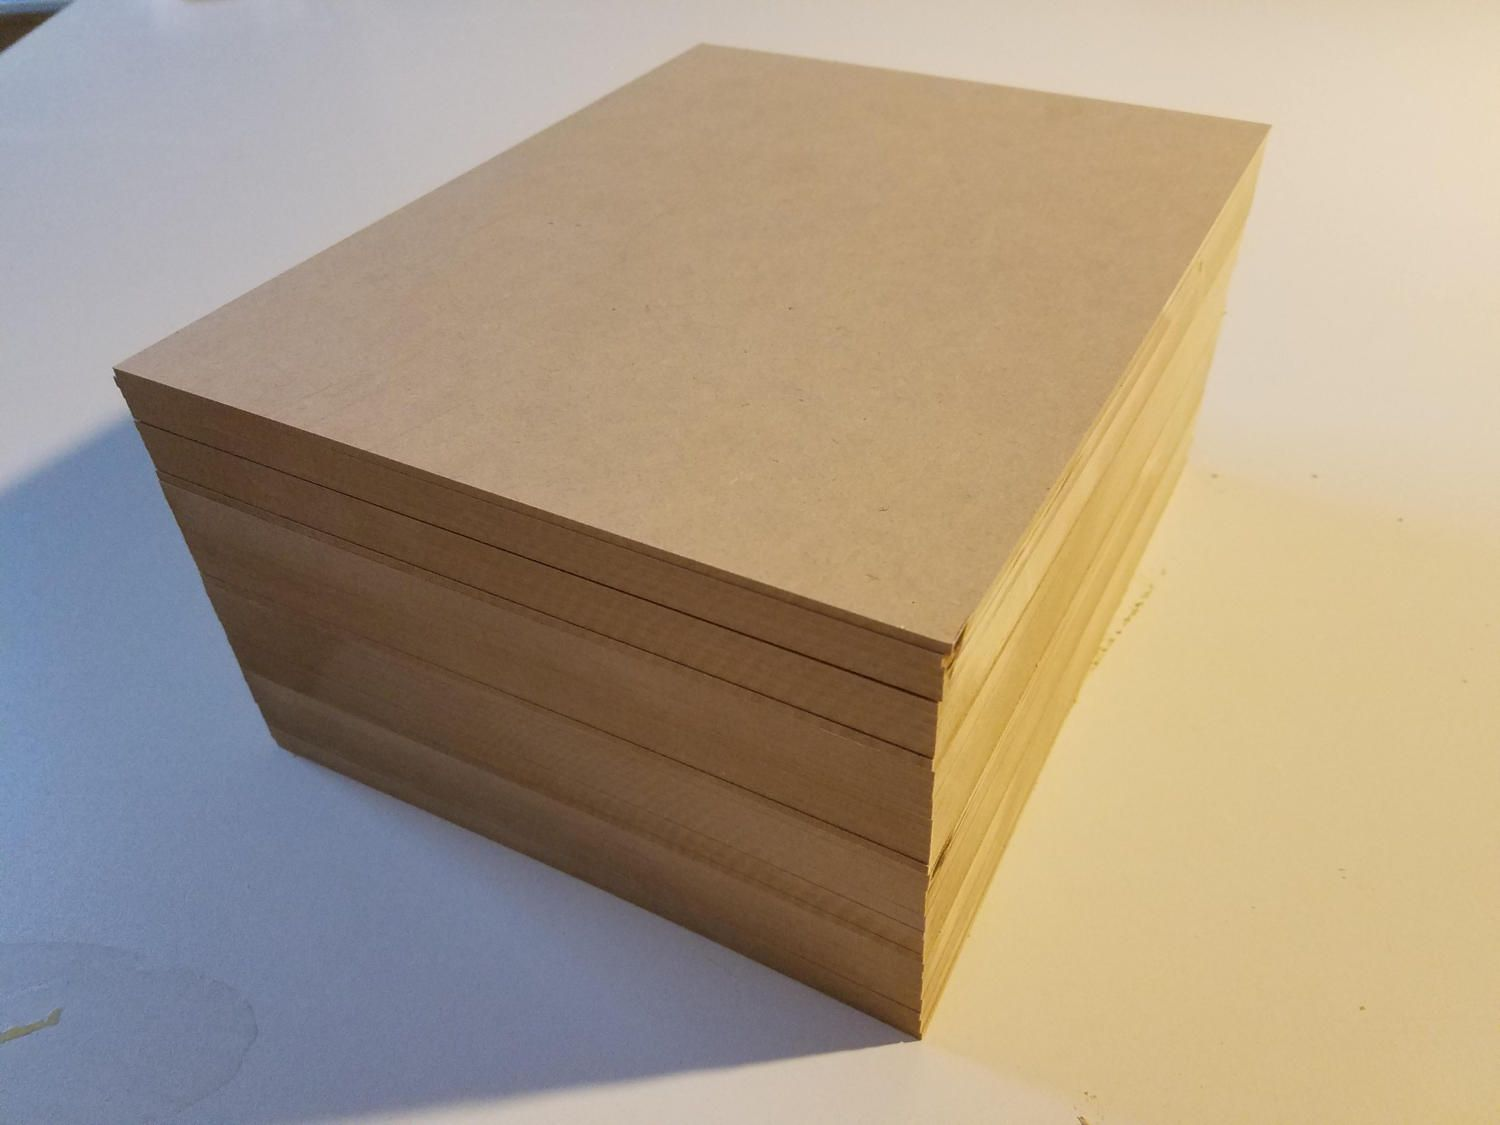 1 8 8 5x11 Mdf Sheets 44 Sheets Medium Density Fiberboard By Americanlasersupply On Etsy Laser Wood Wood Sheets Las Fiberboard Laser Engraving Wood Crafts